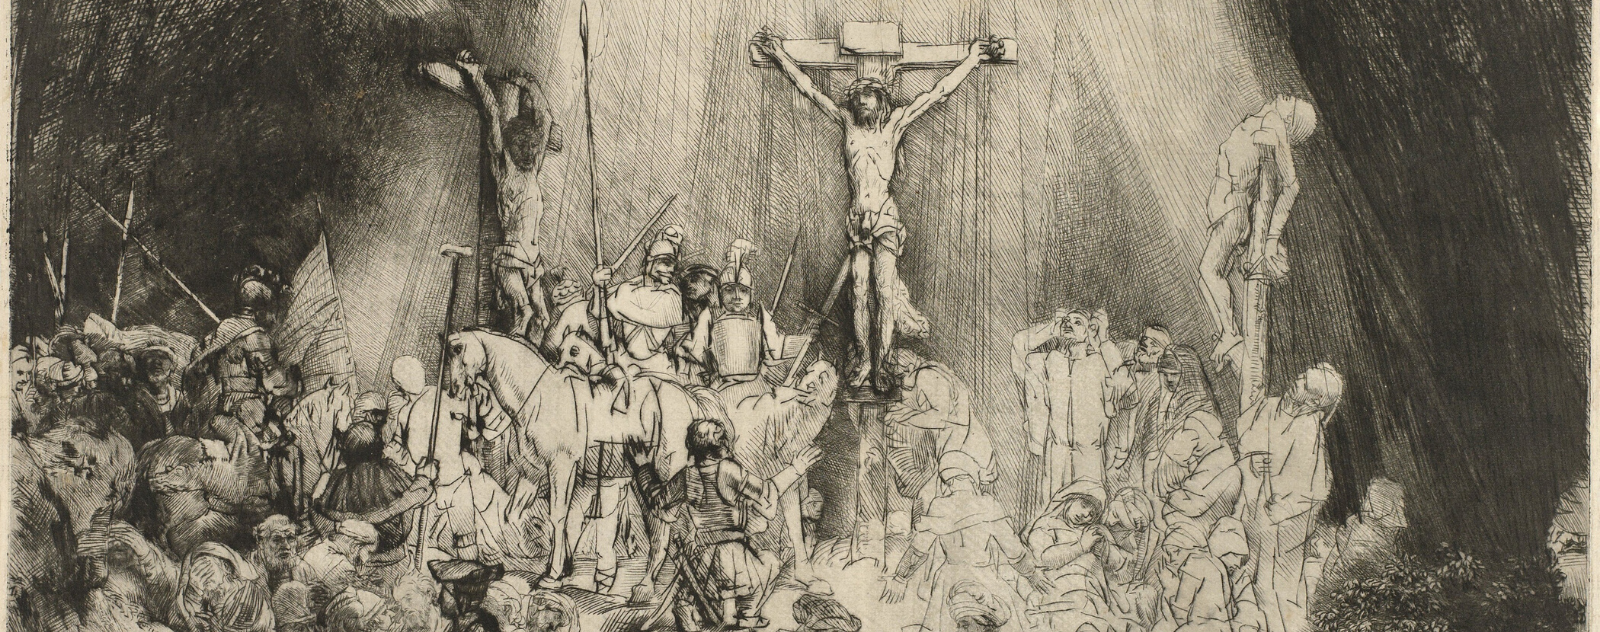 Who was crucified with Jesus